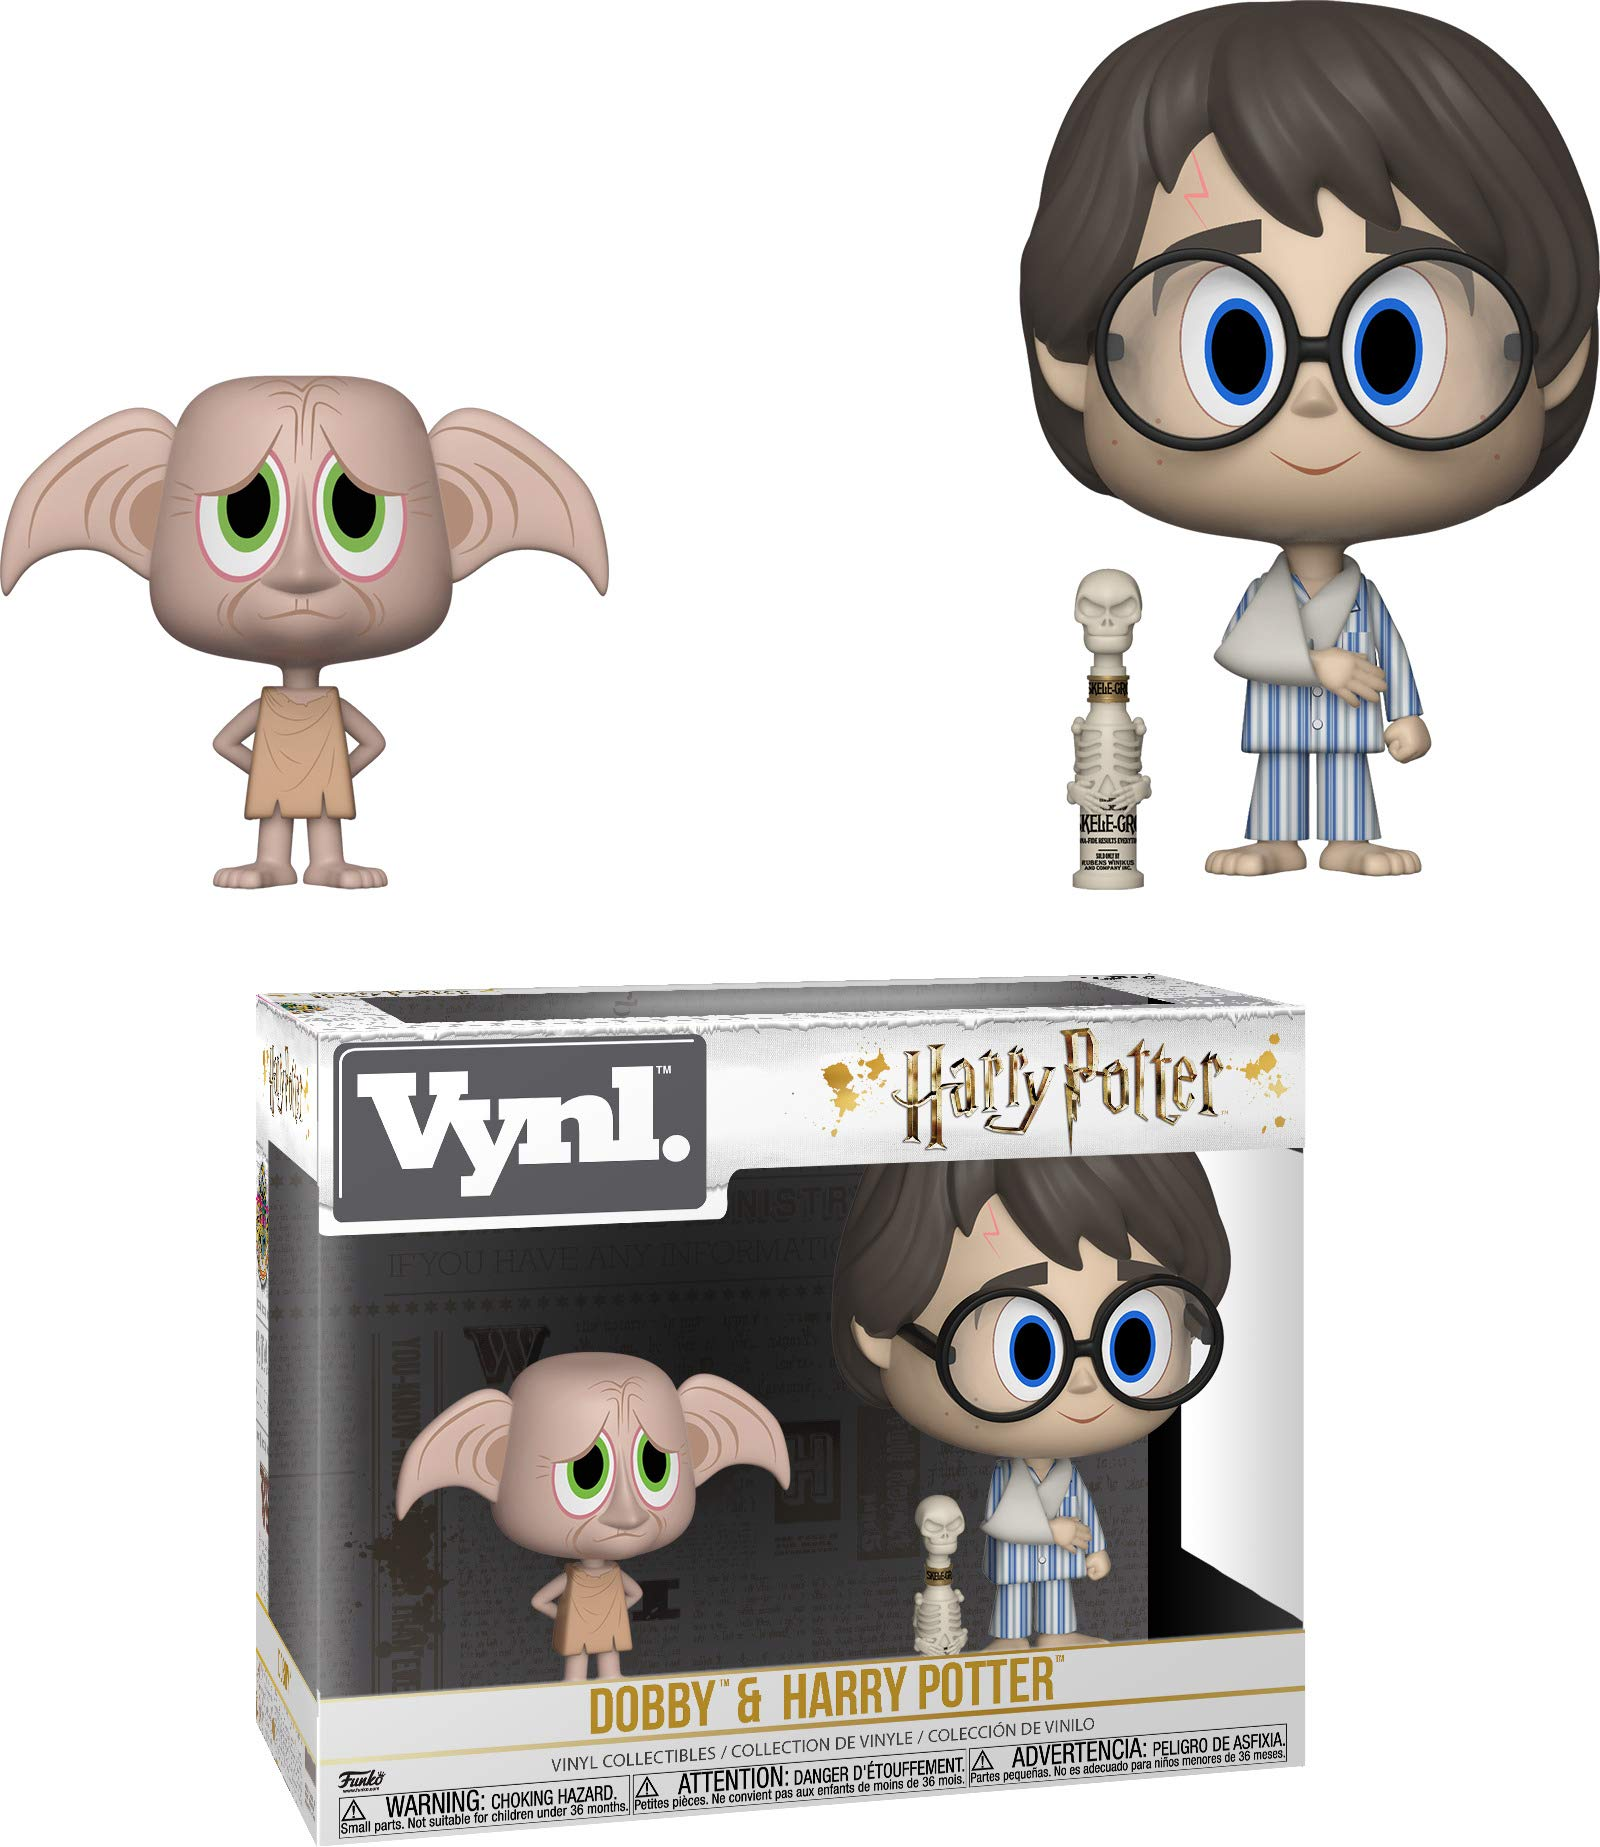 Funko 31001 VYNL 4 Inch 2-Pack: Harry Potter: Dobby and Harry